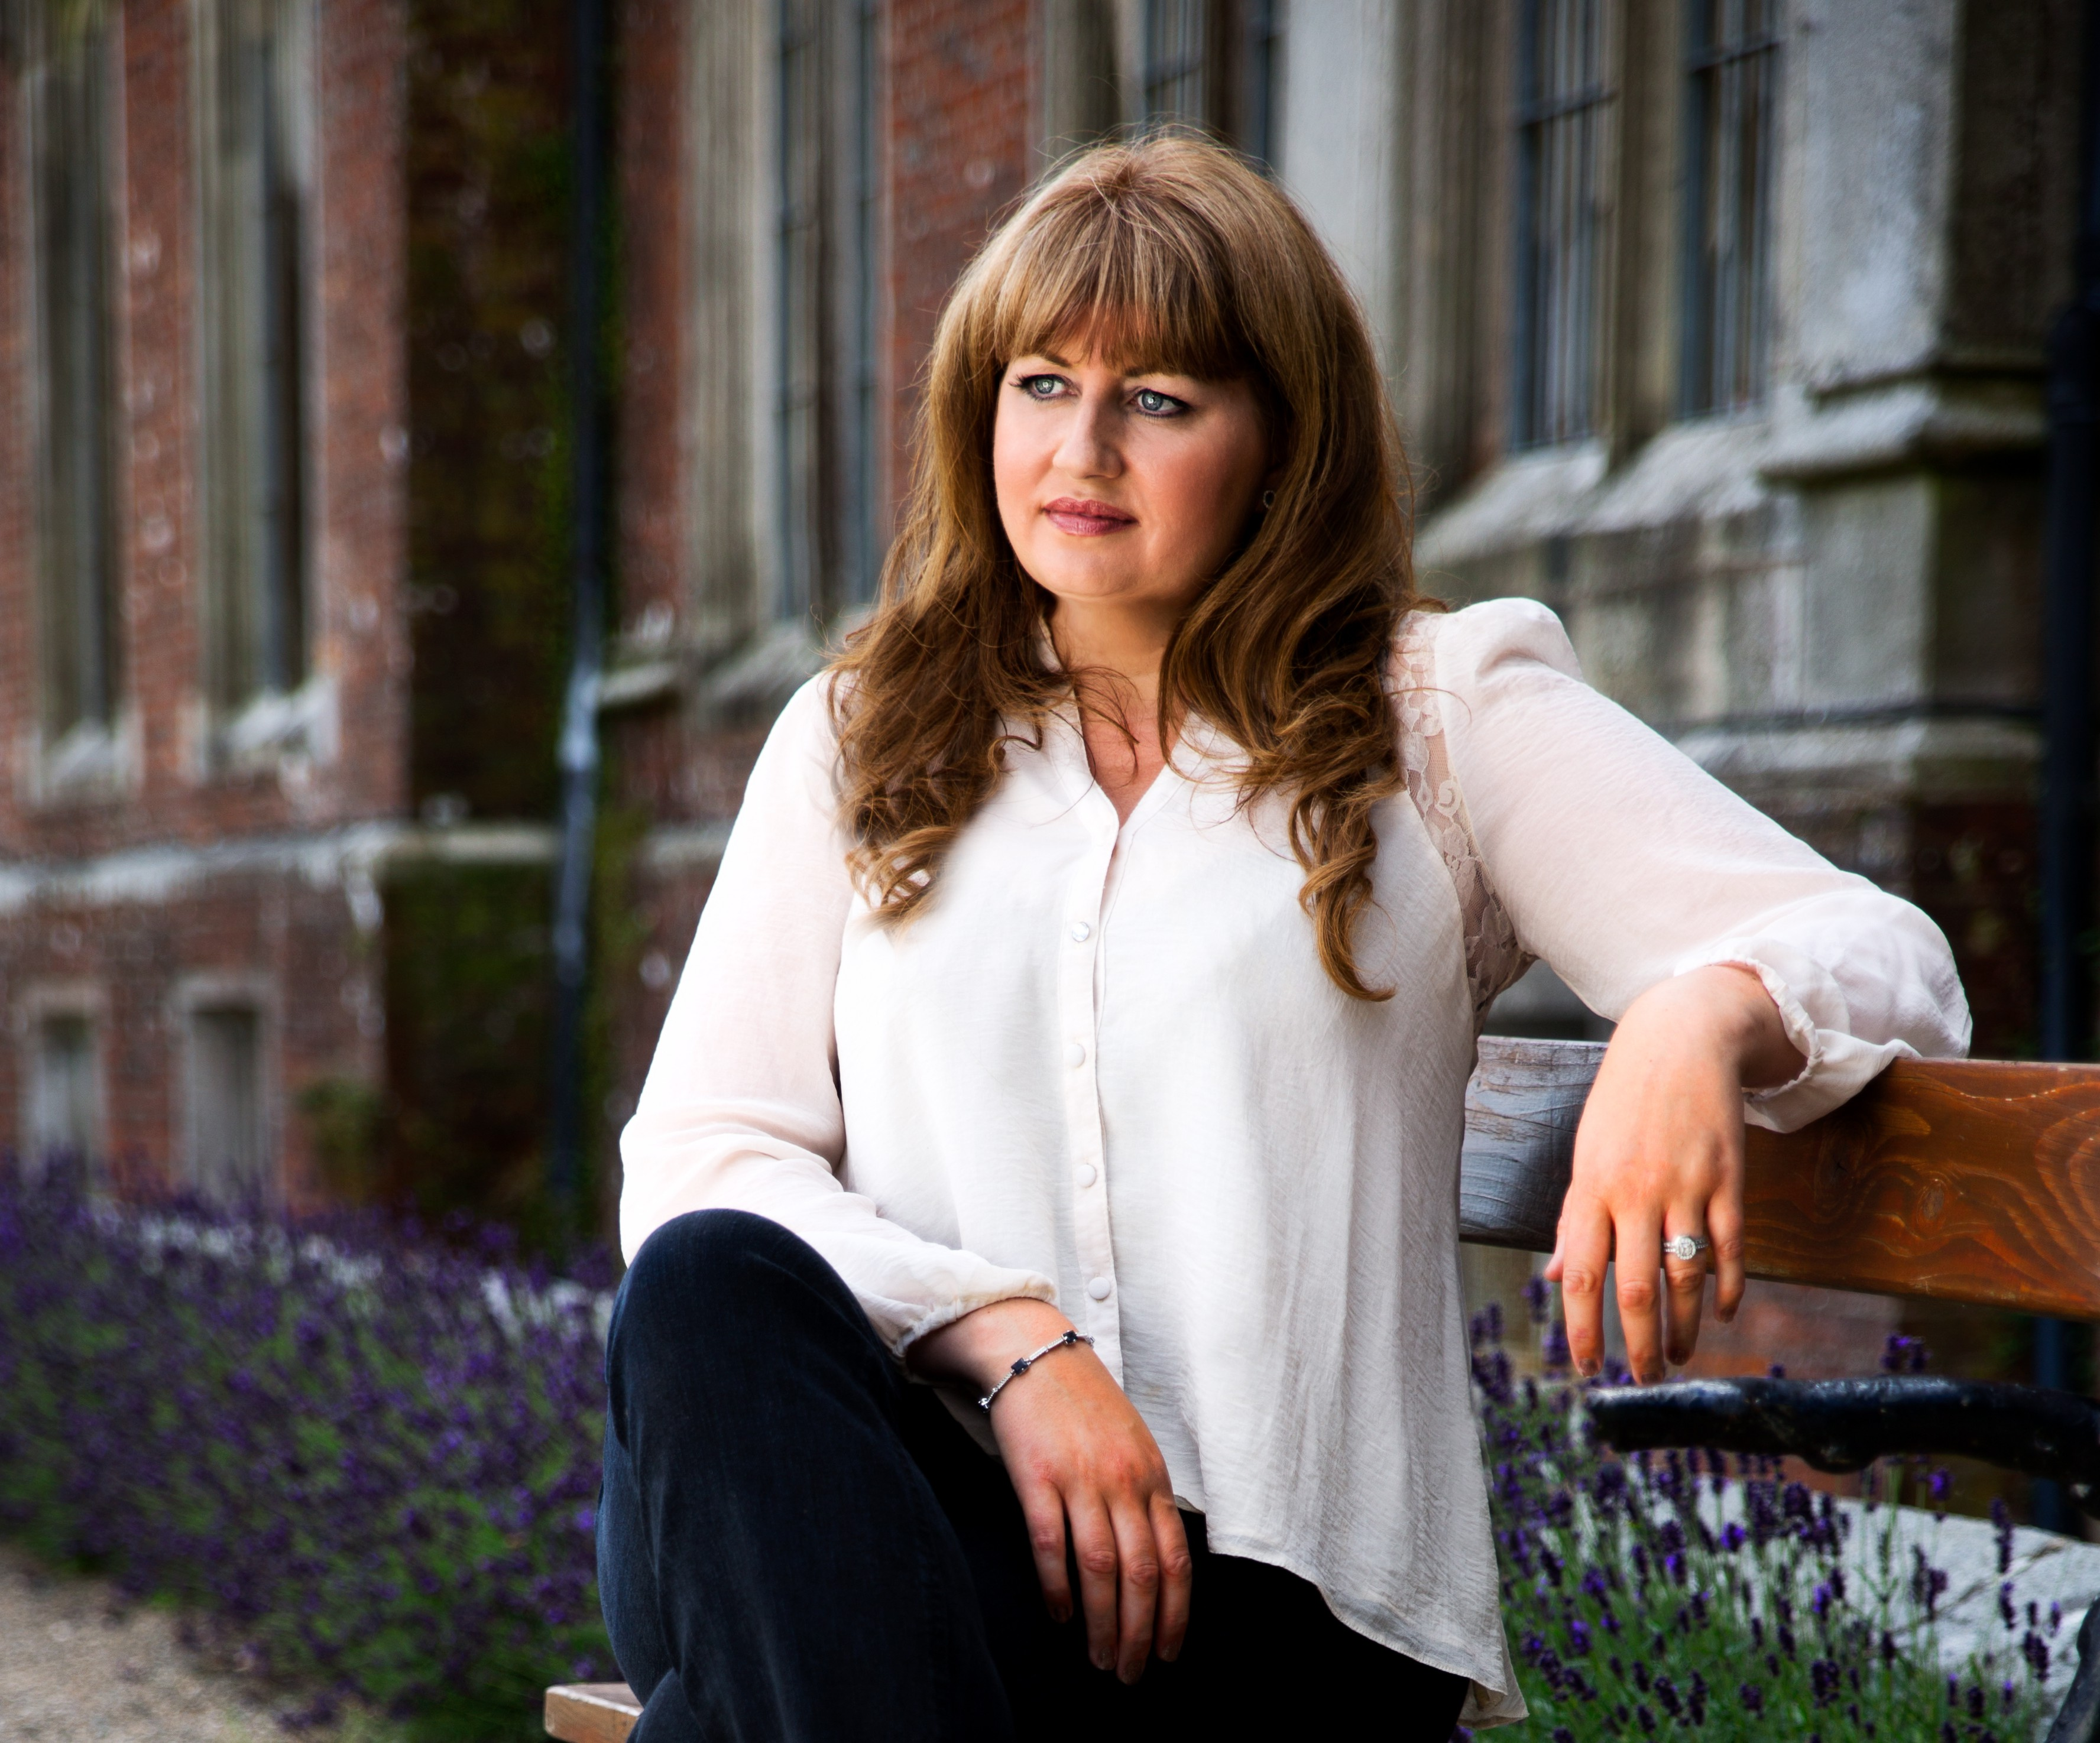 Irish author joins Rowling as a Book of Year winner